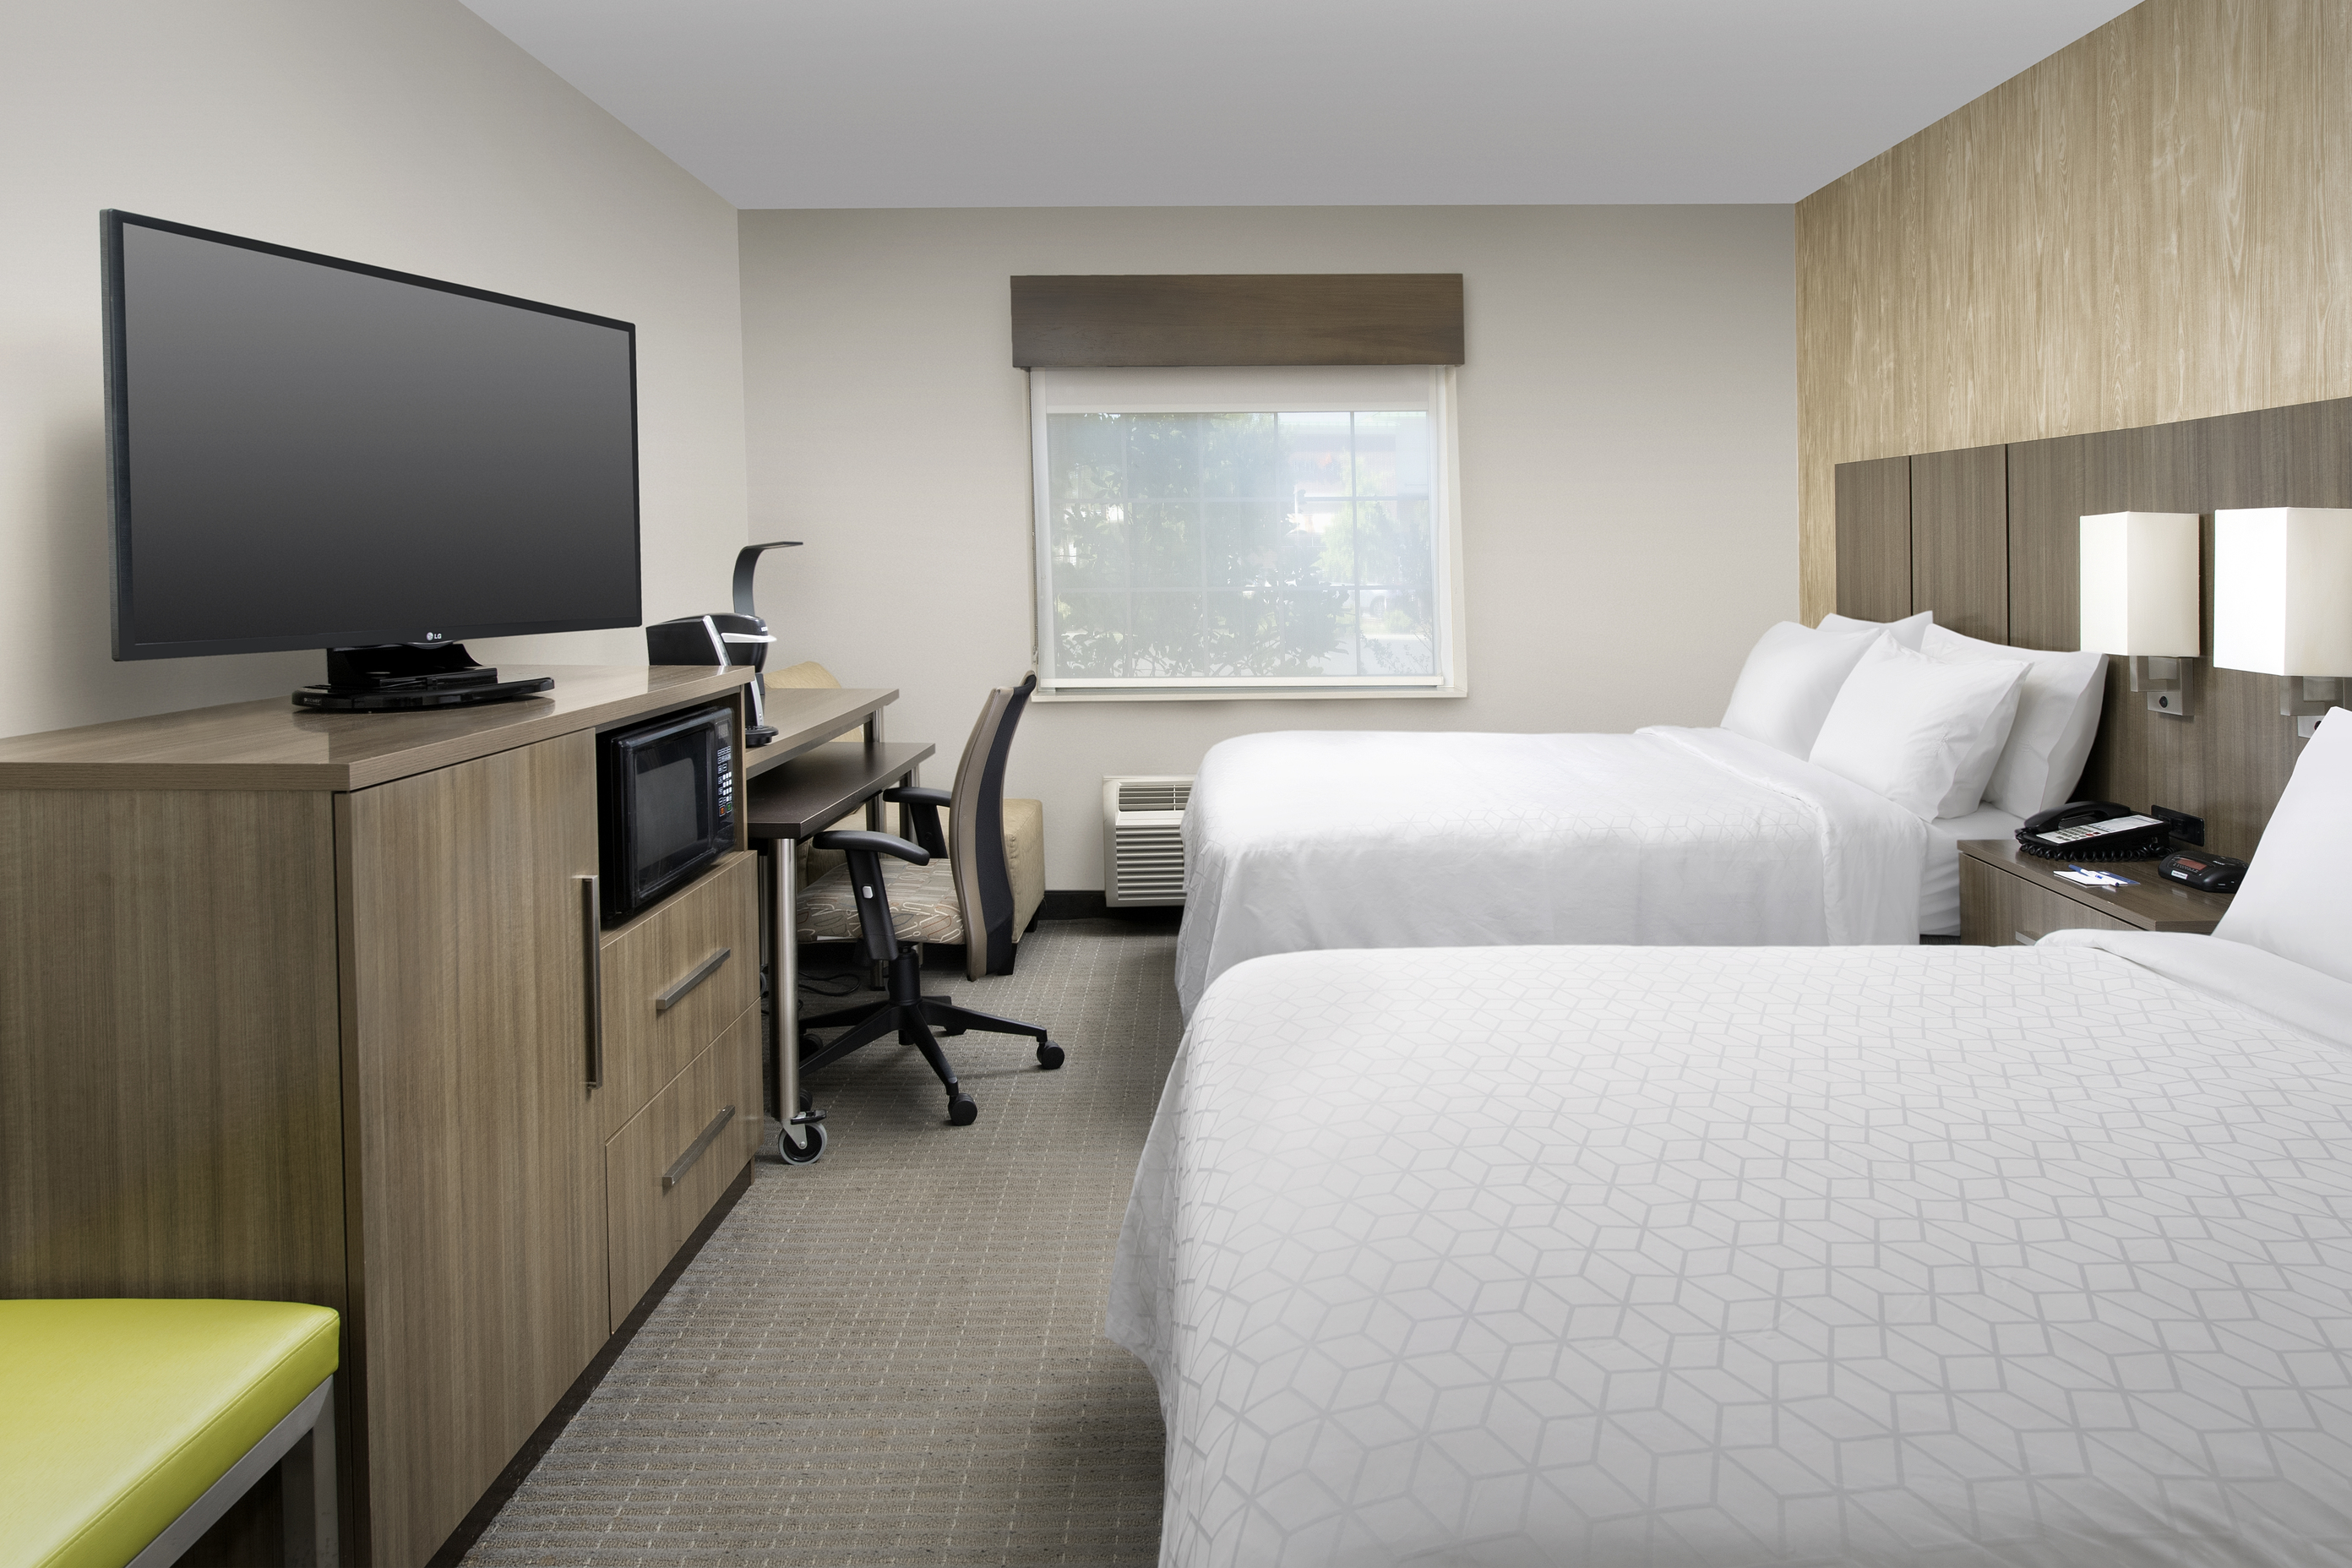 U S  Naval Academy Hotel | Holiday Inn Express & Suites